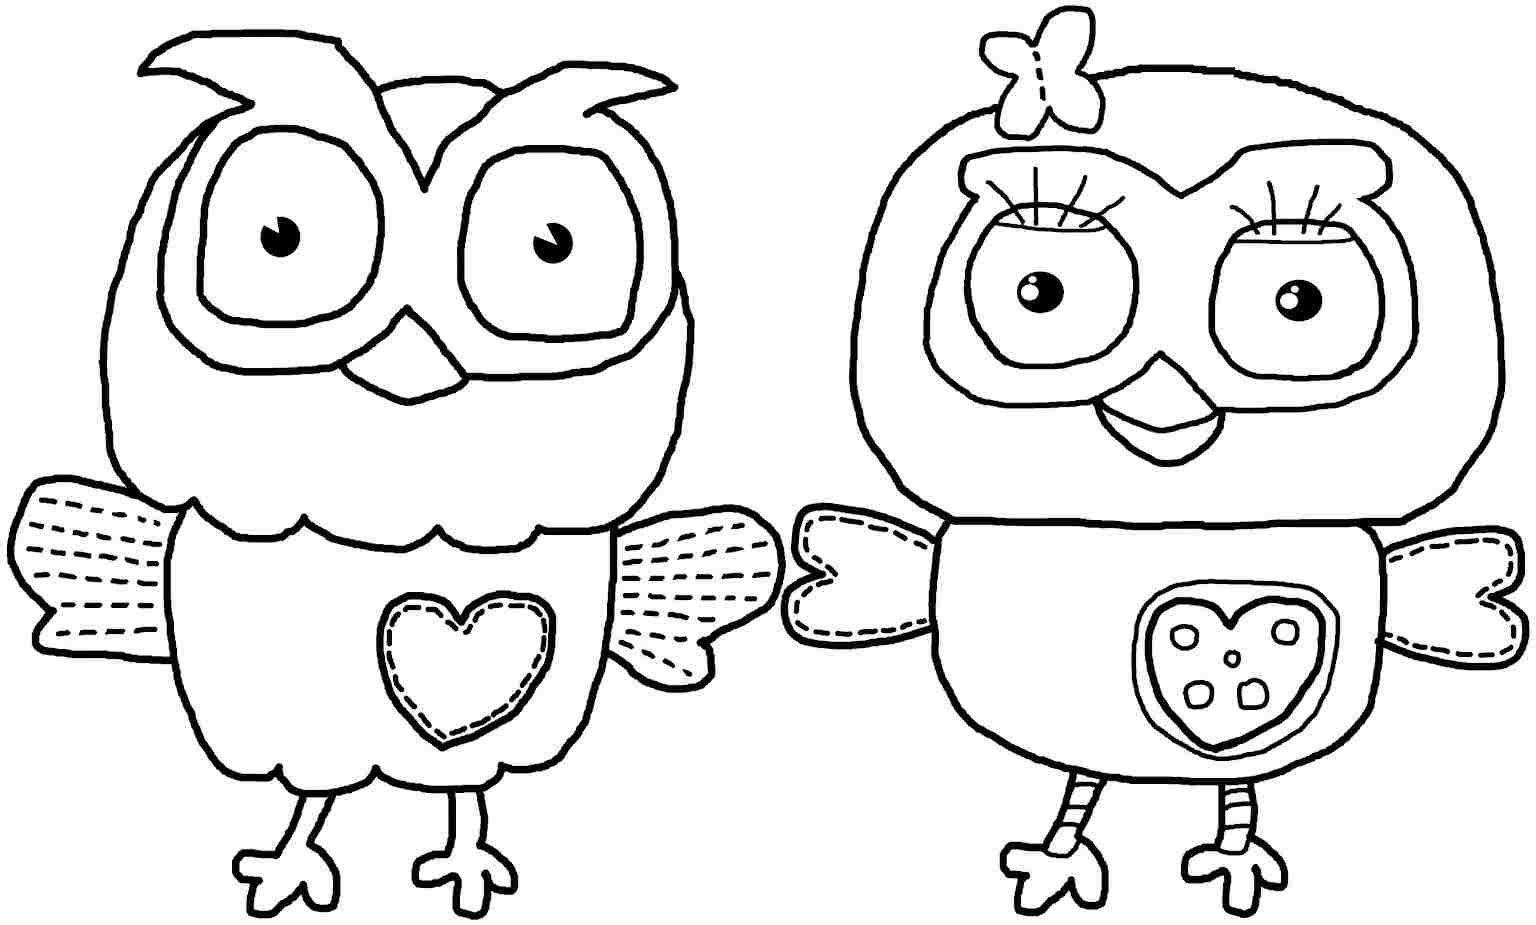 Free Printable Animal Coloring Pages At Book Online Best Of Color